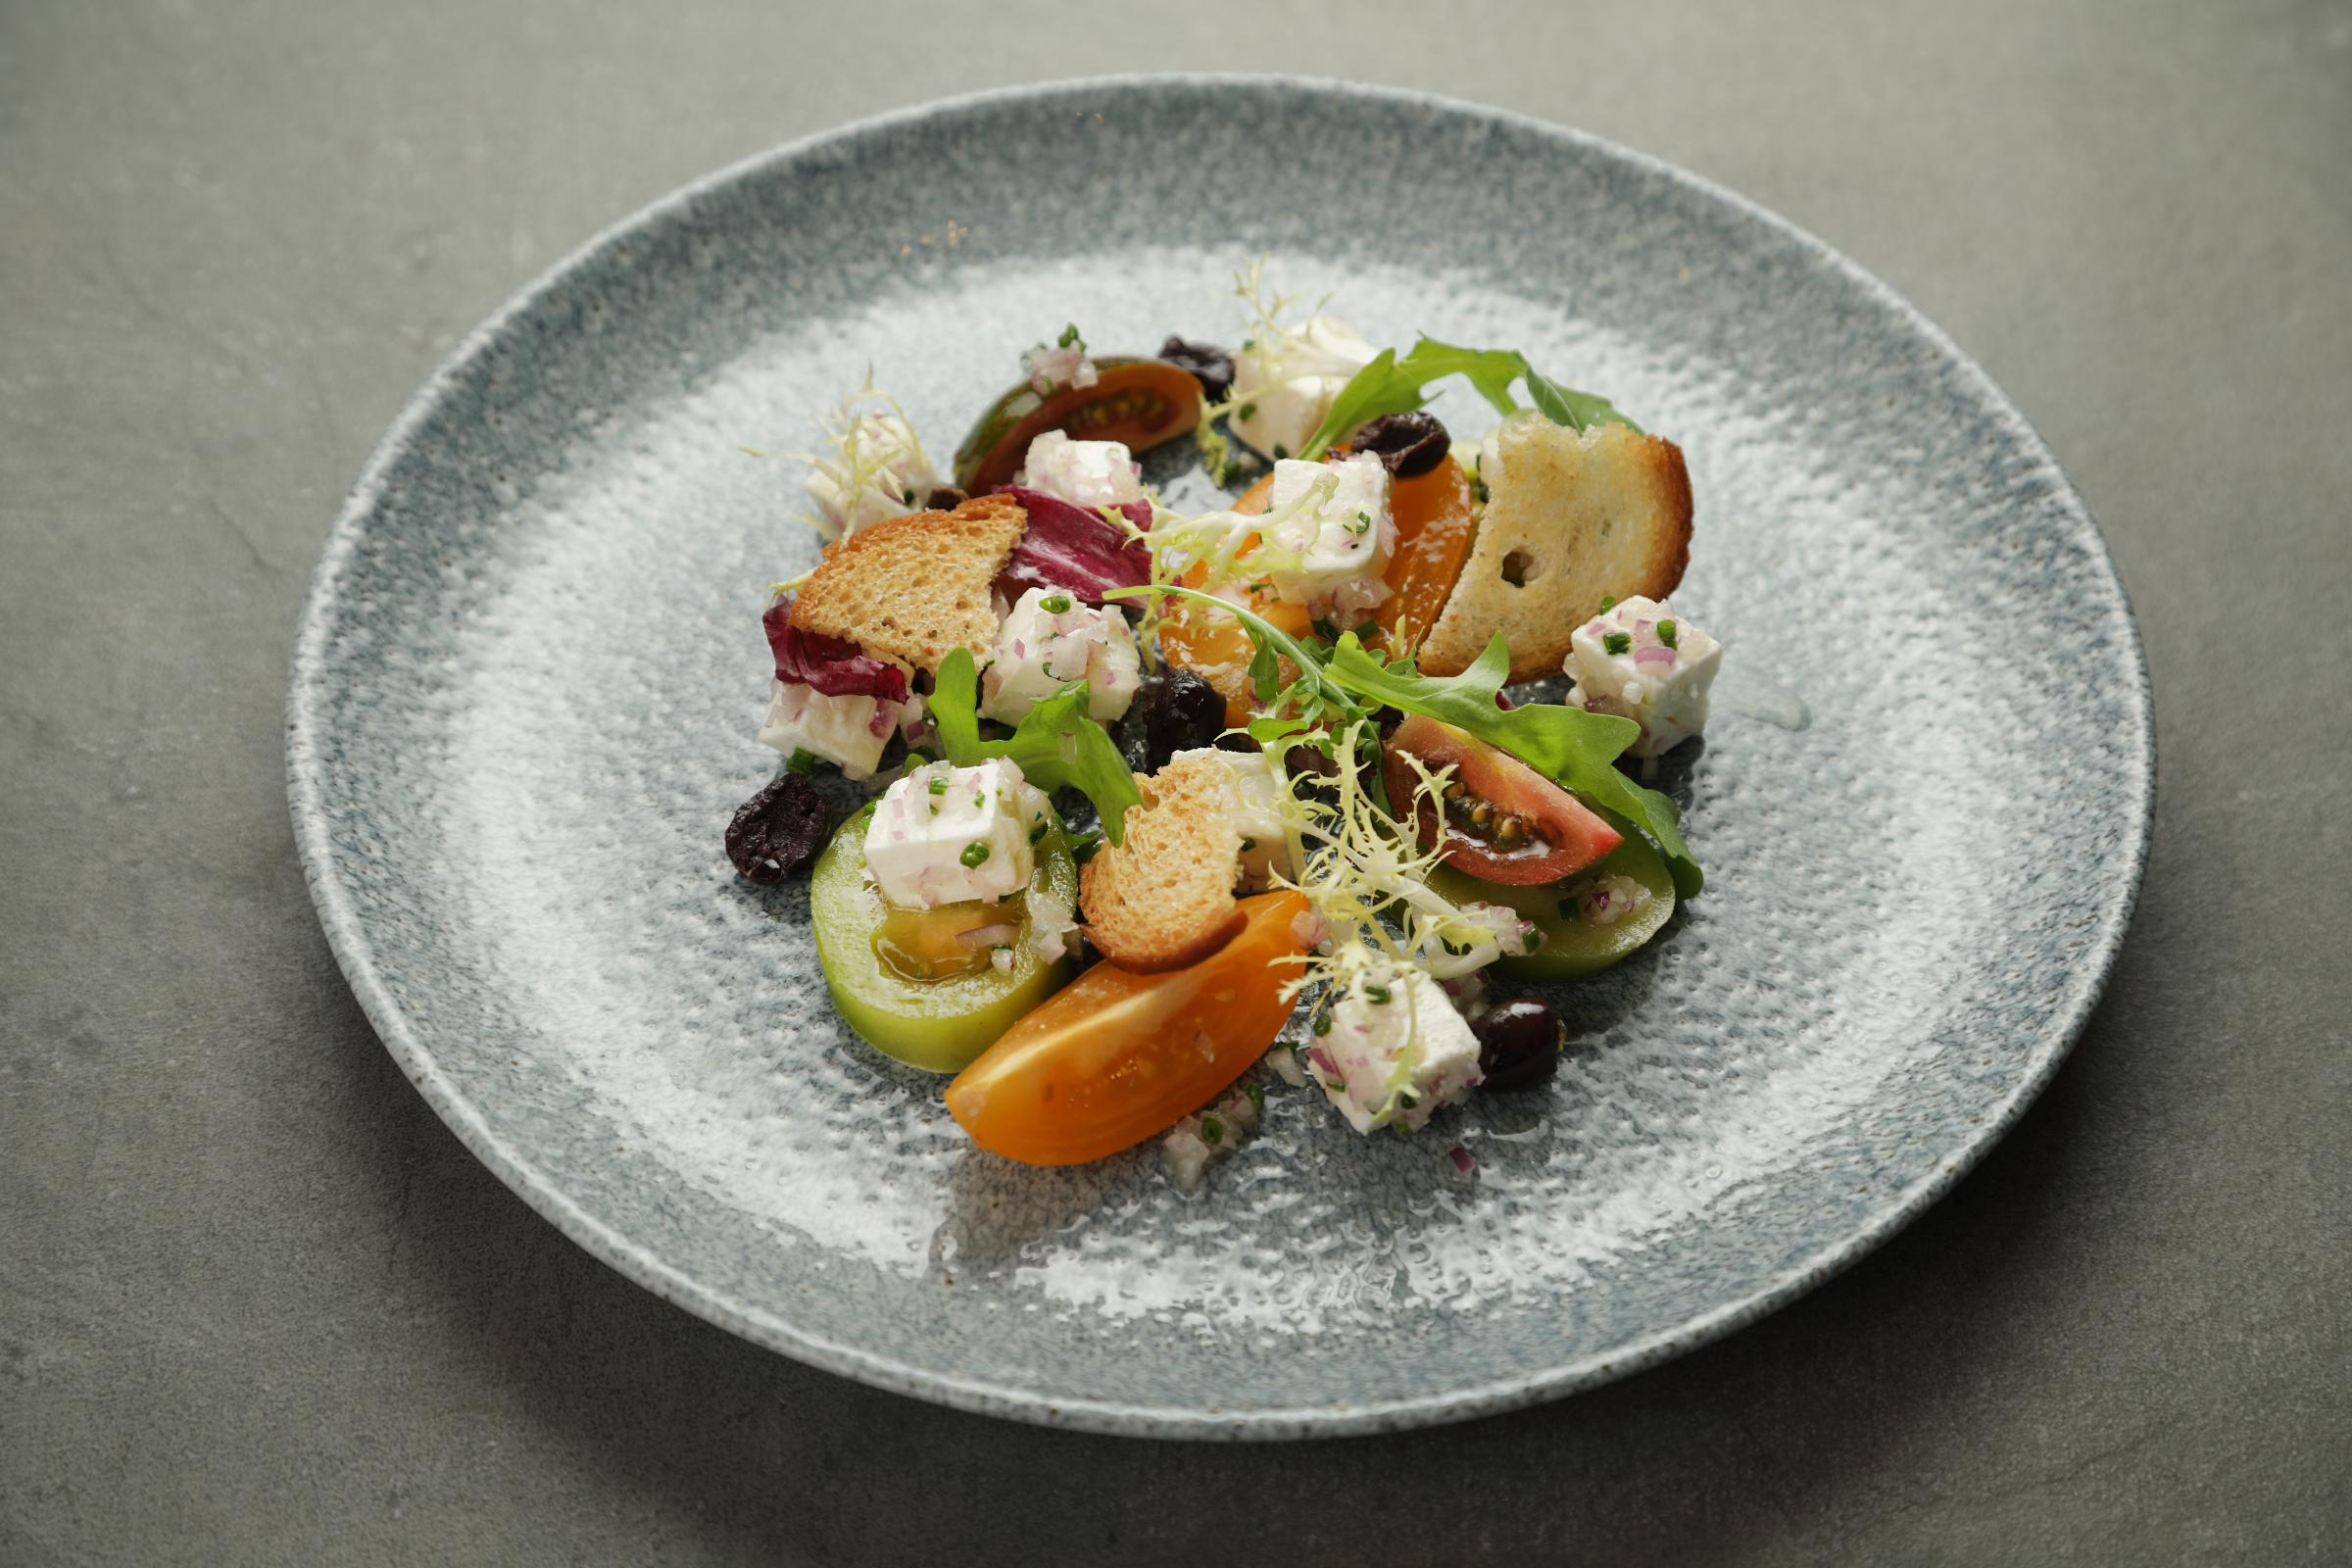 Brian Maule: Feta cheese with red onion and olives, heritage tomato salad